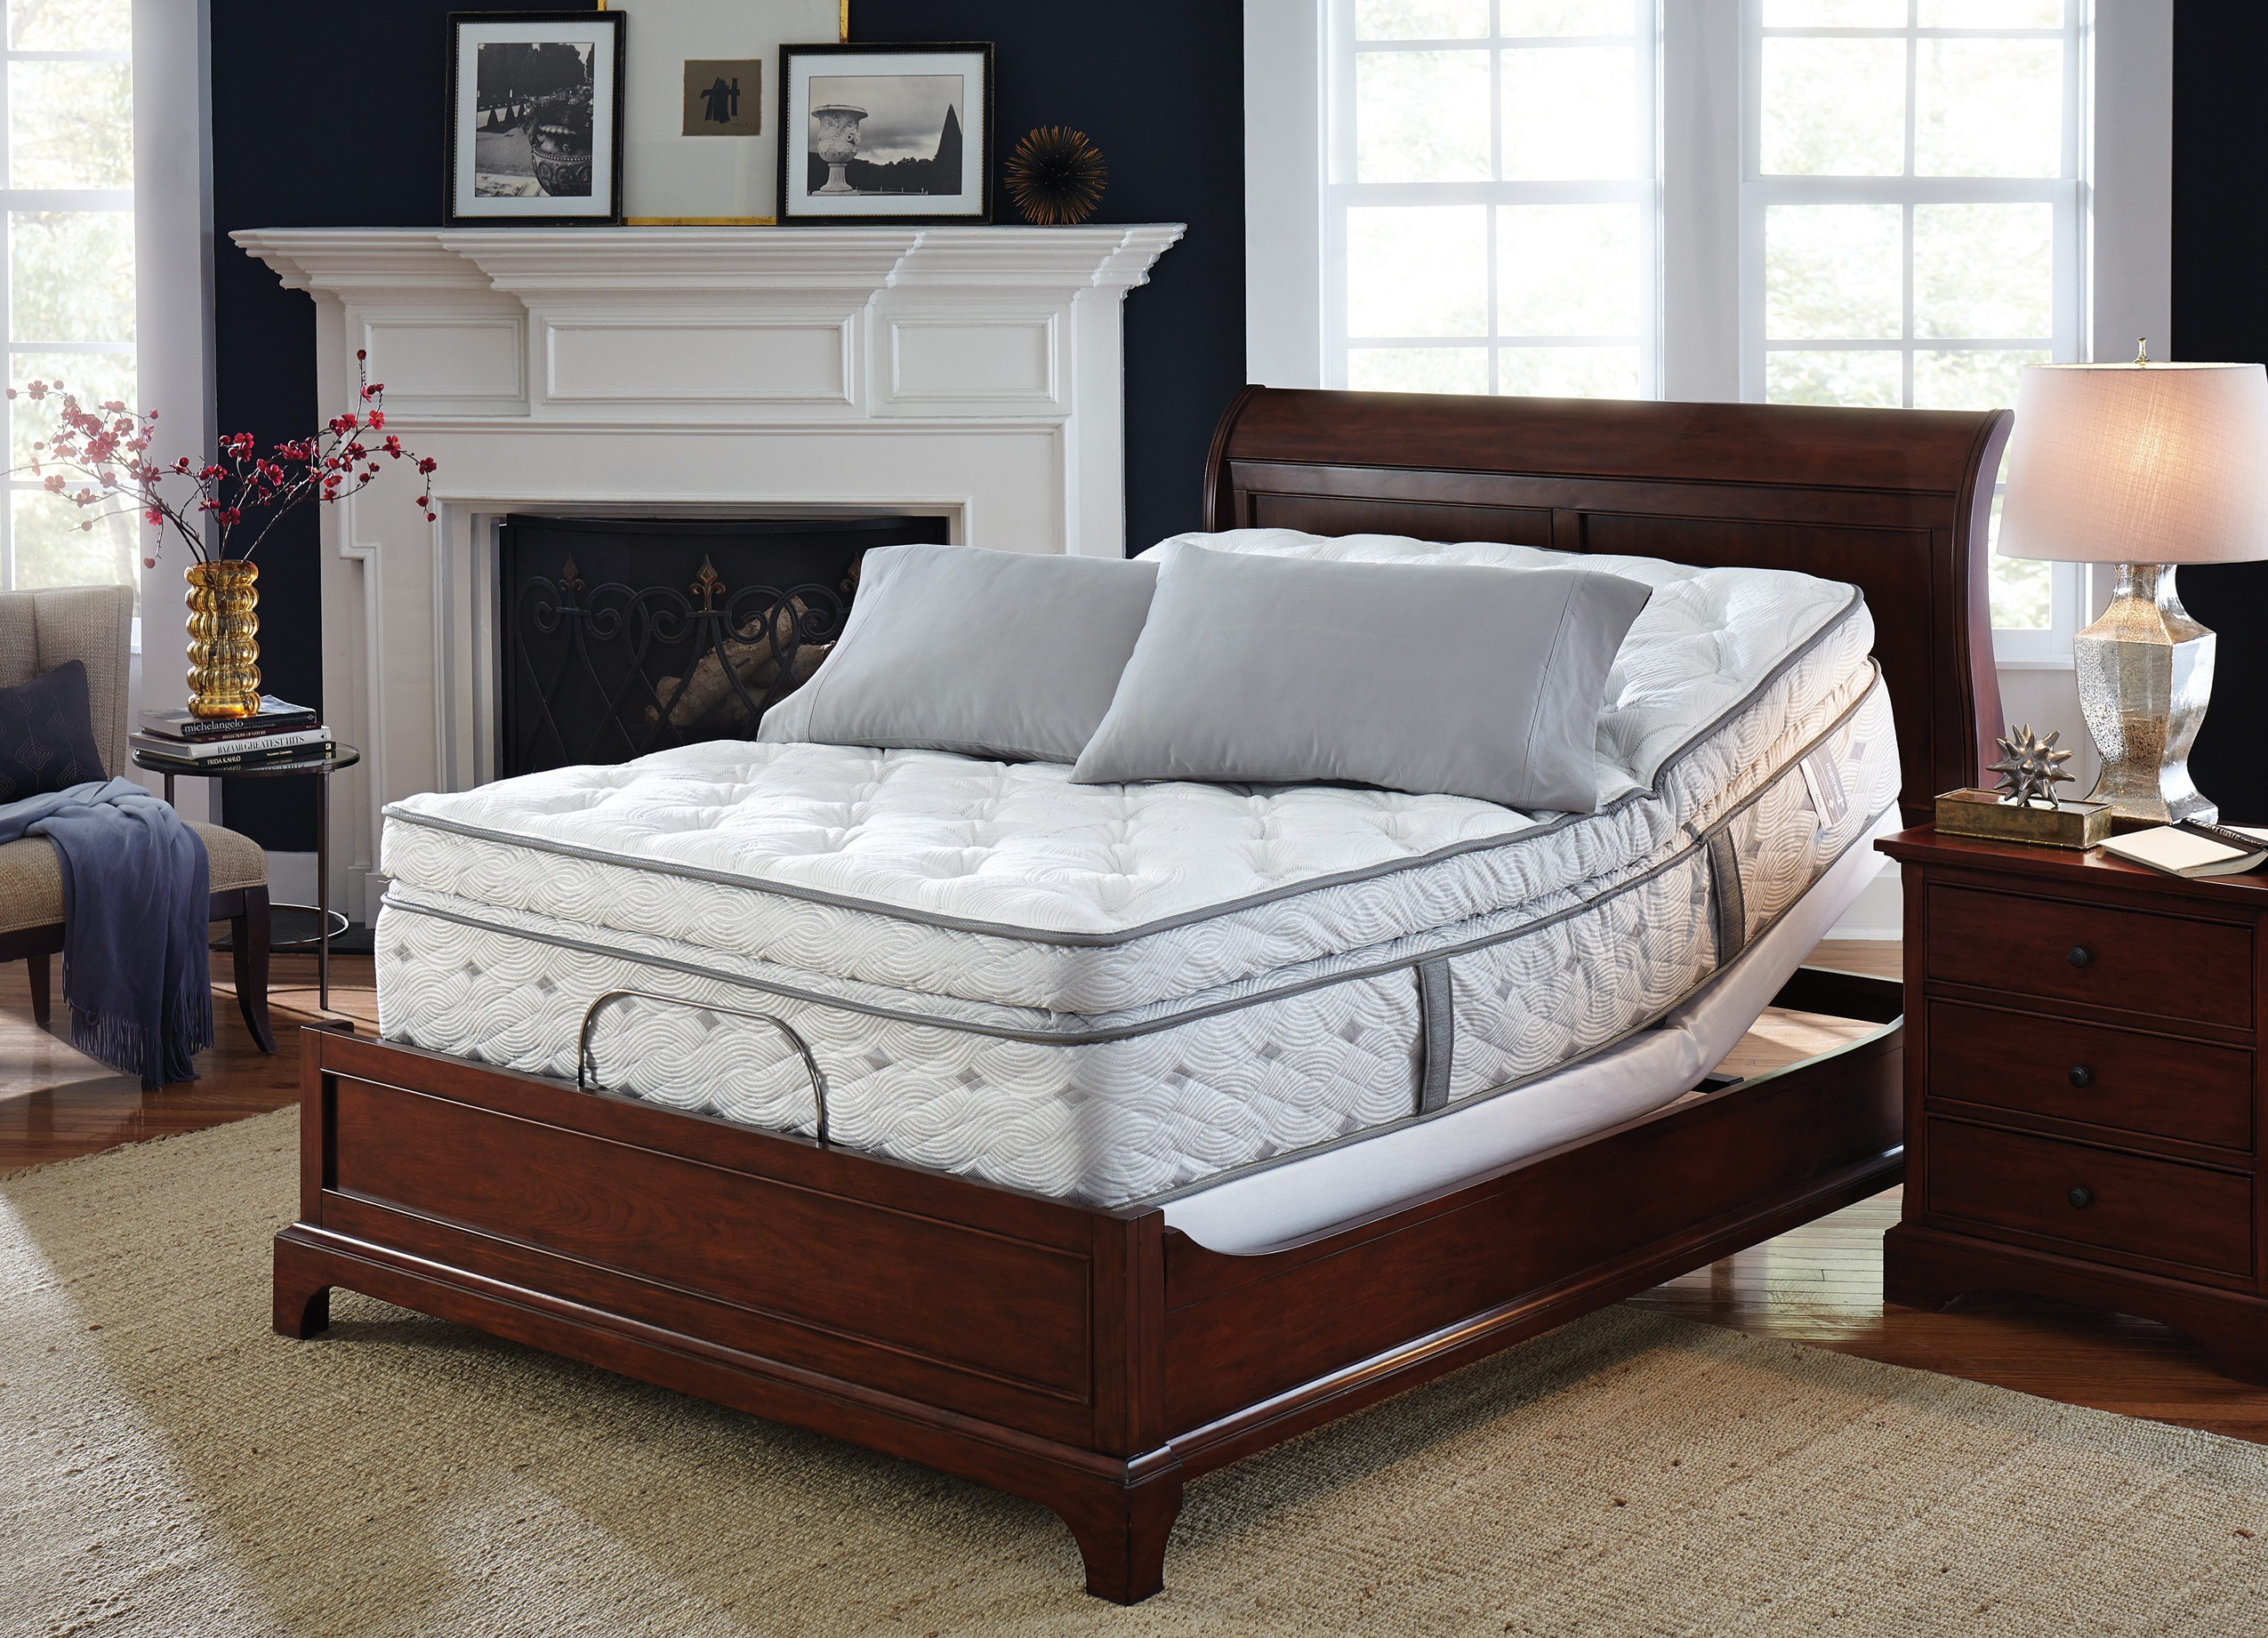 Why Land Of Sleep is the Best Mattress Store in Sarasota, Florida